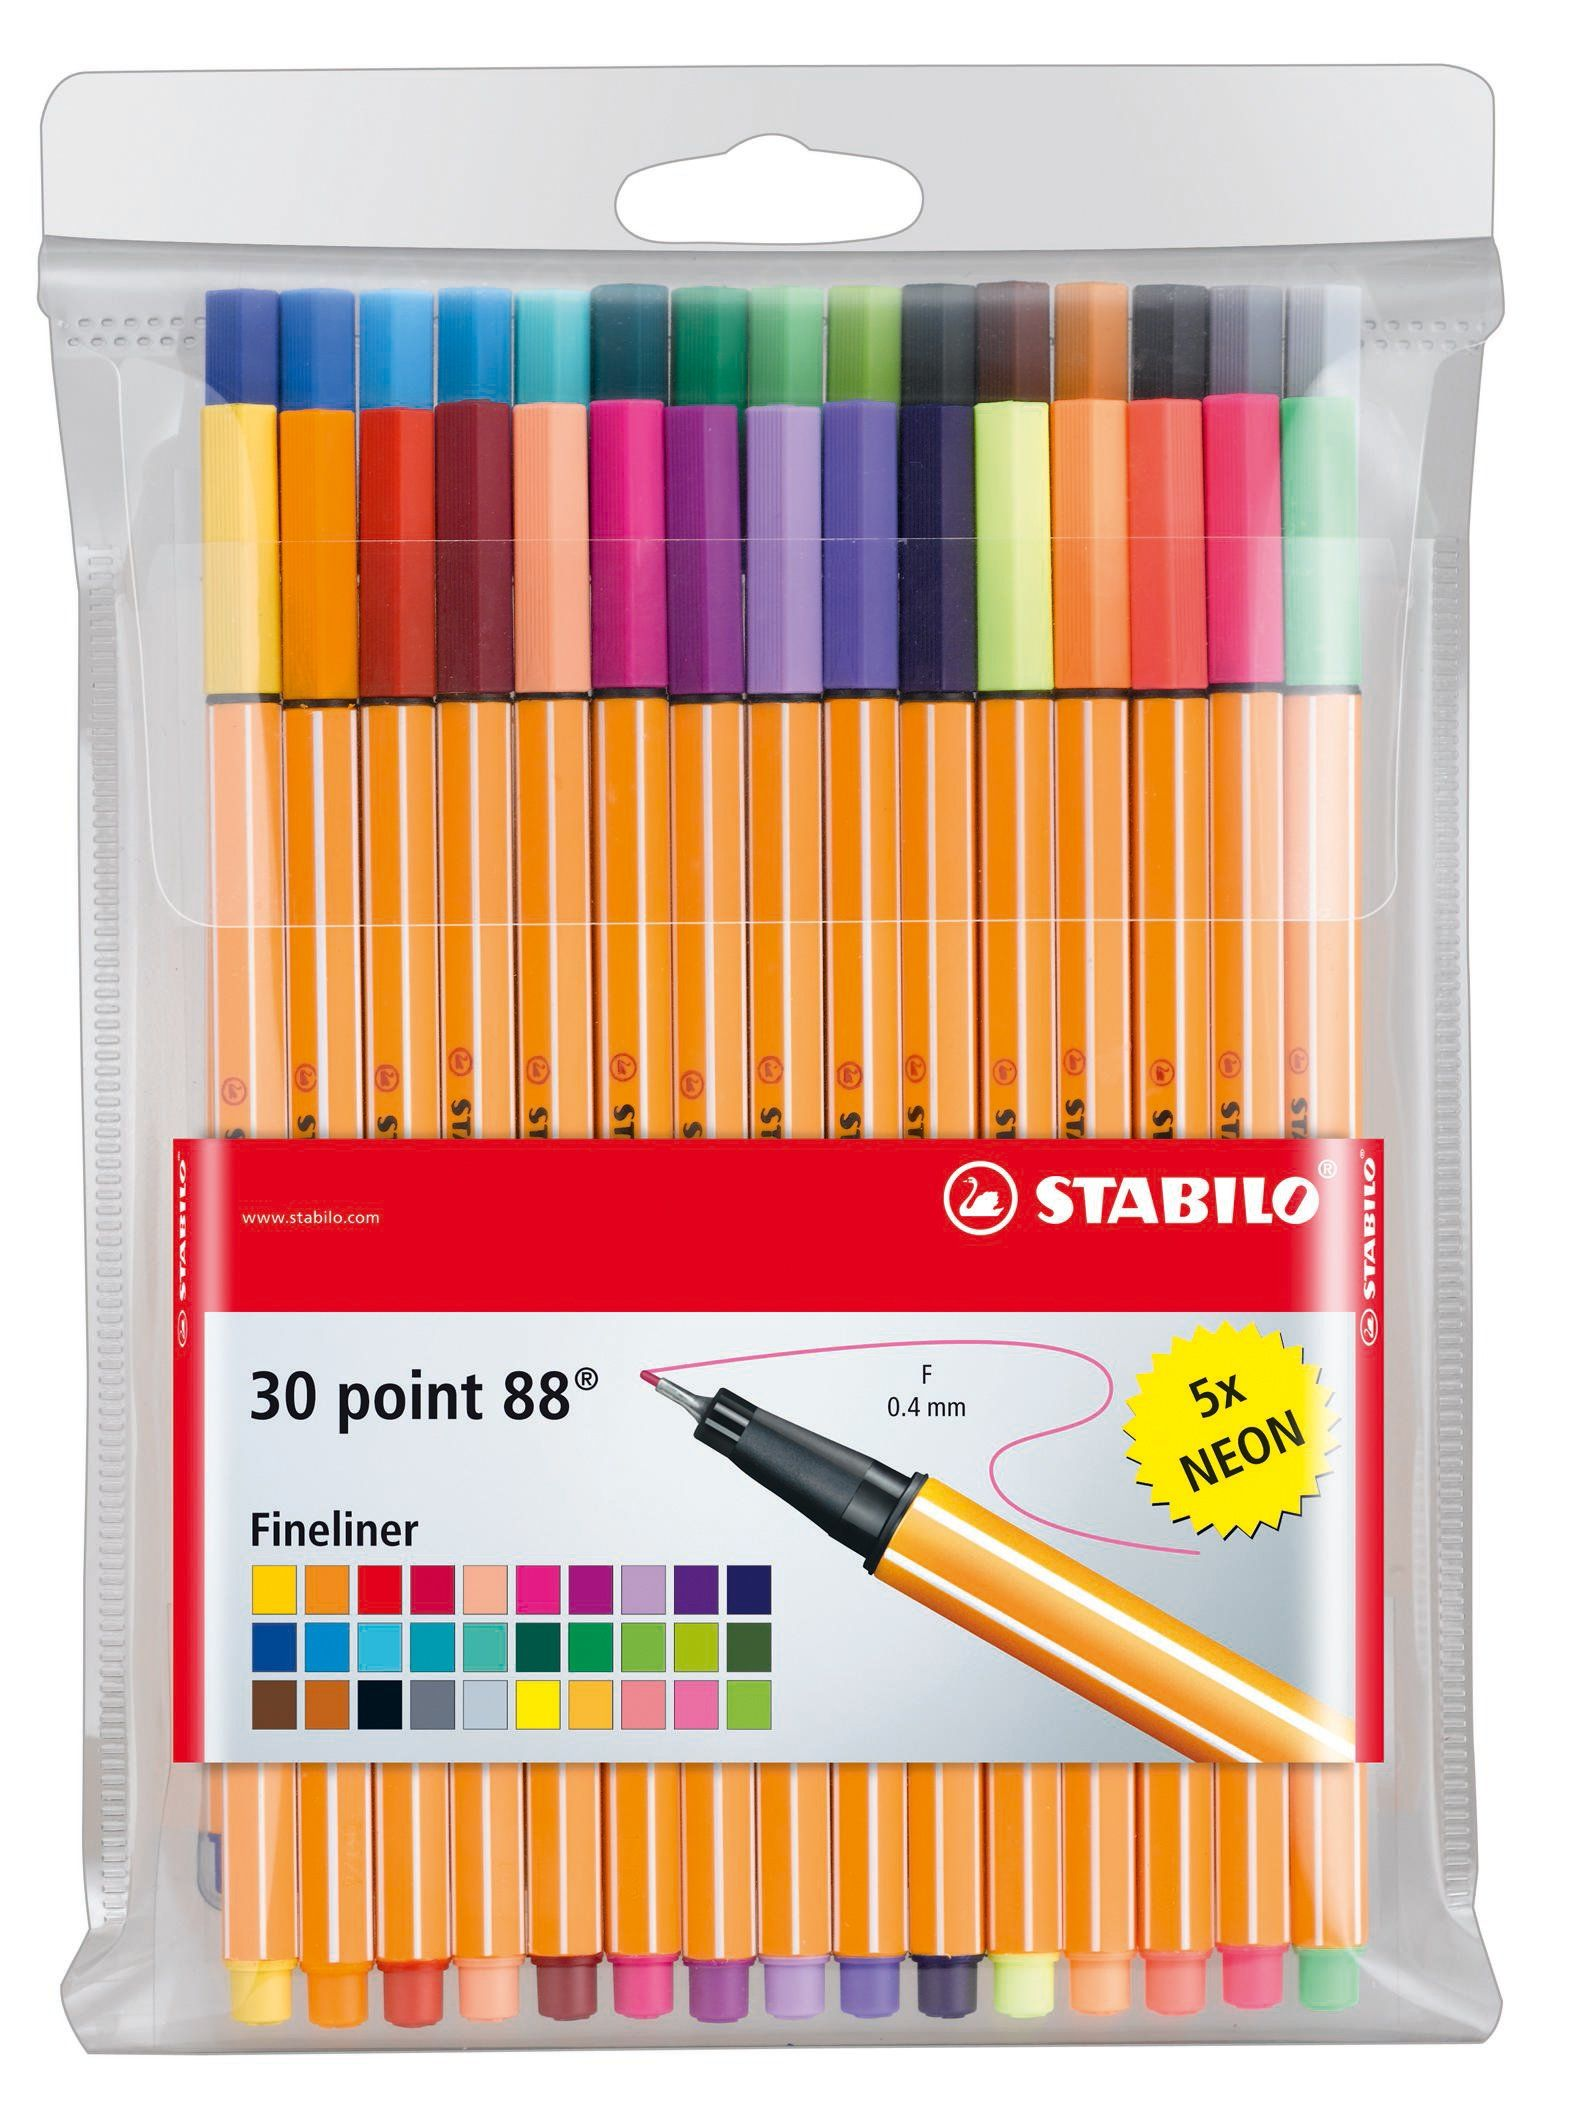 - Best Markers For Adult Coloring Books That Don't Bleed Through The